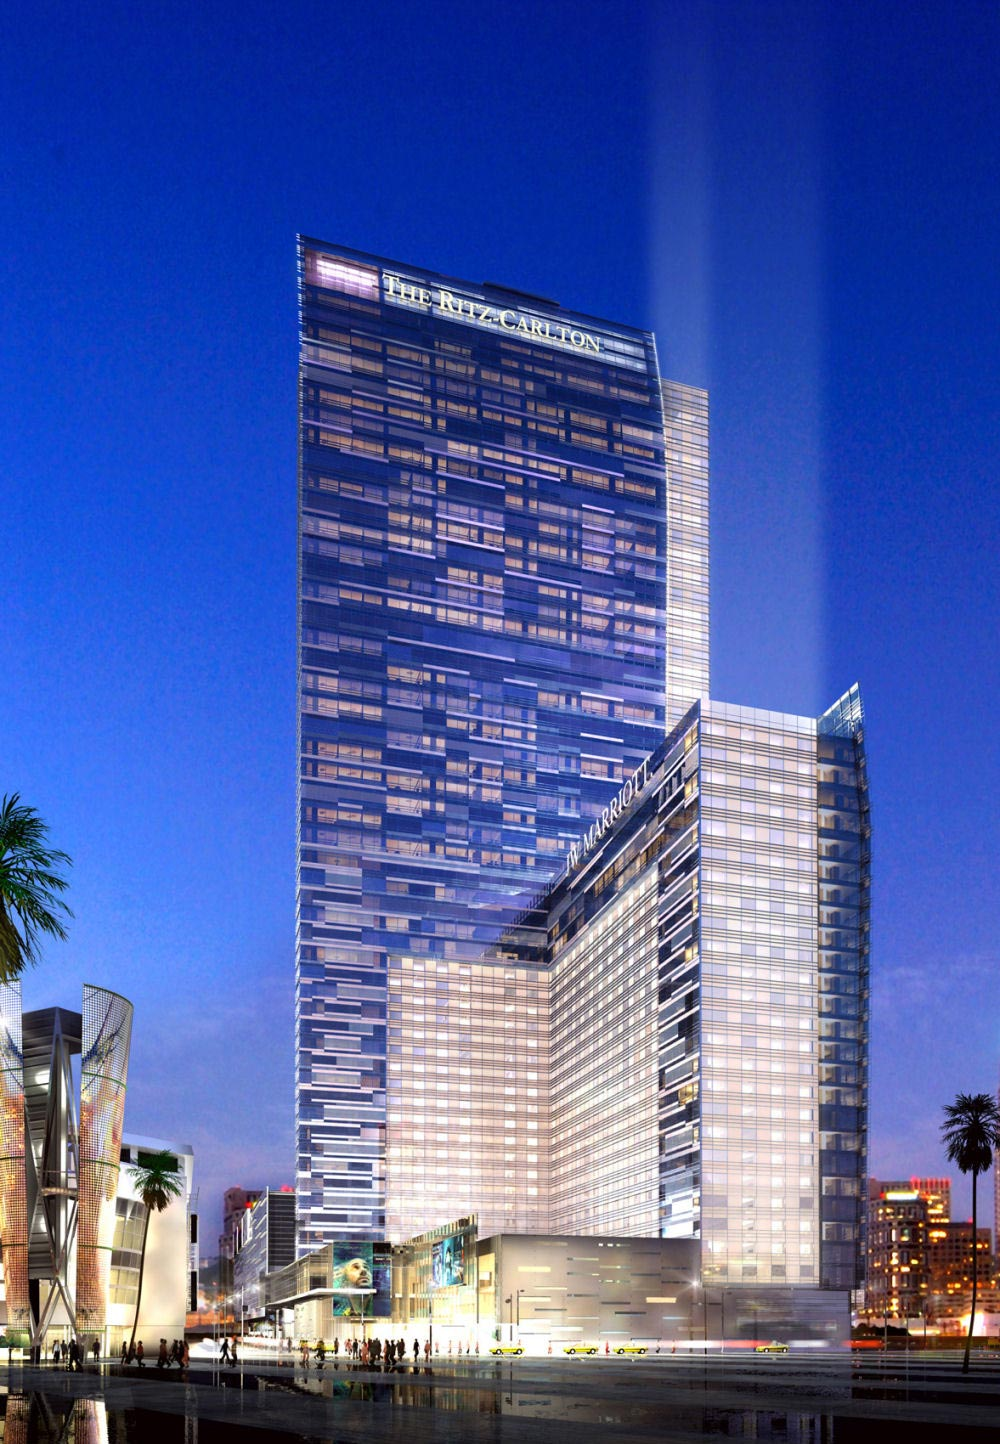 Ritz-Carlton Los Angeles &#8211; First Five-Star hotel in Downtown L.A. Opens